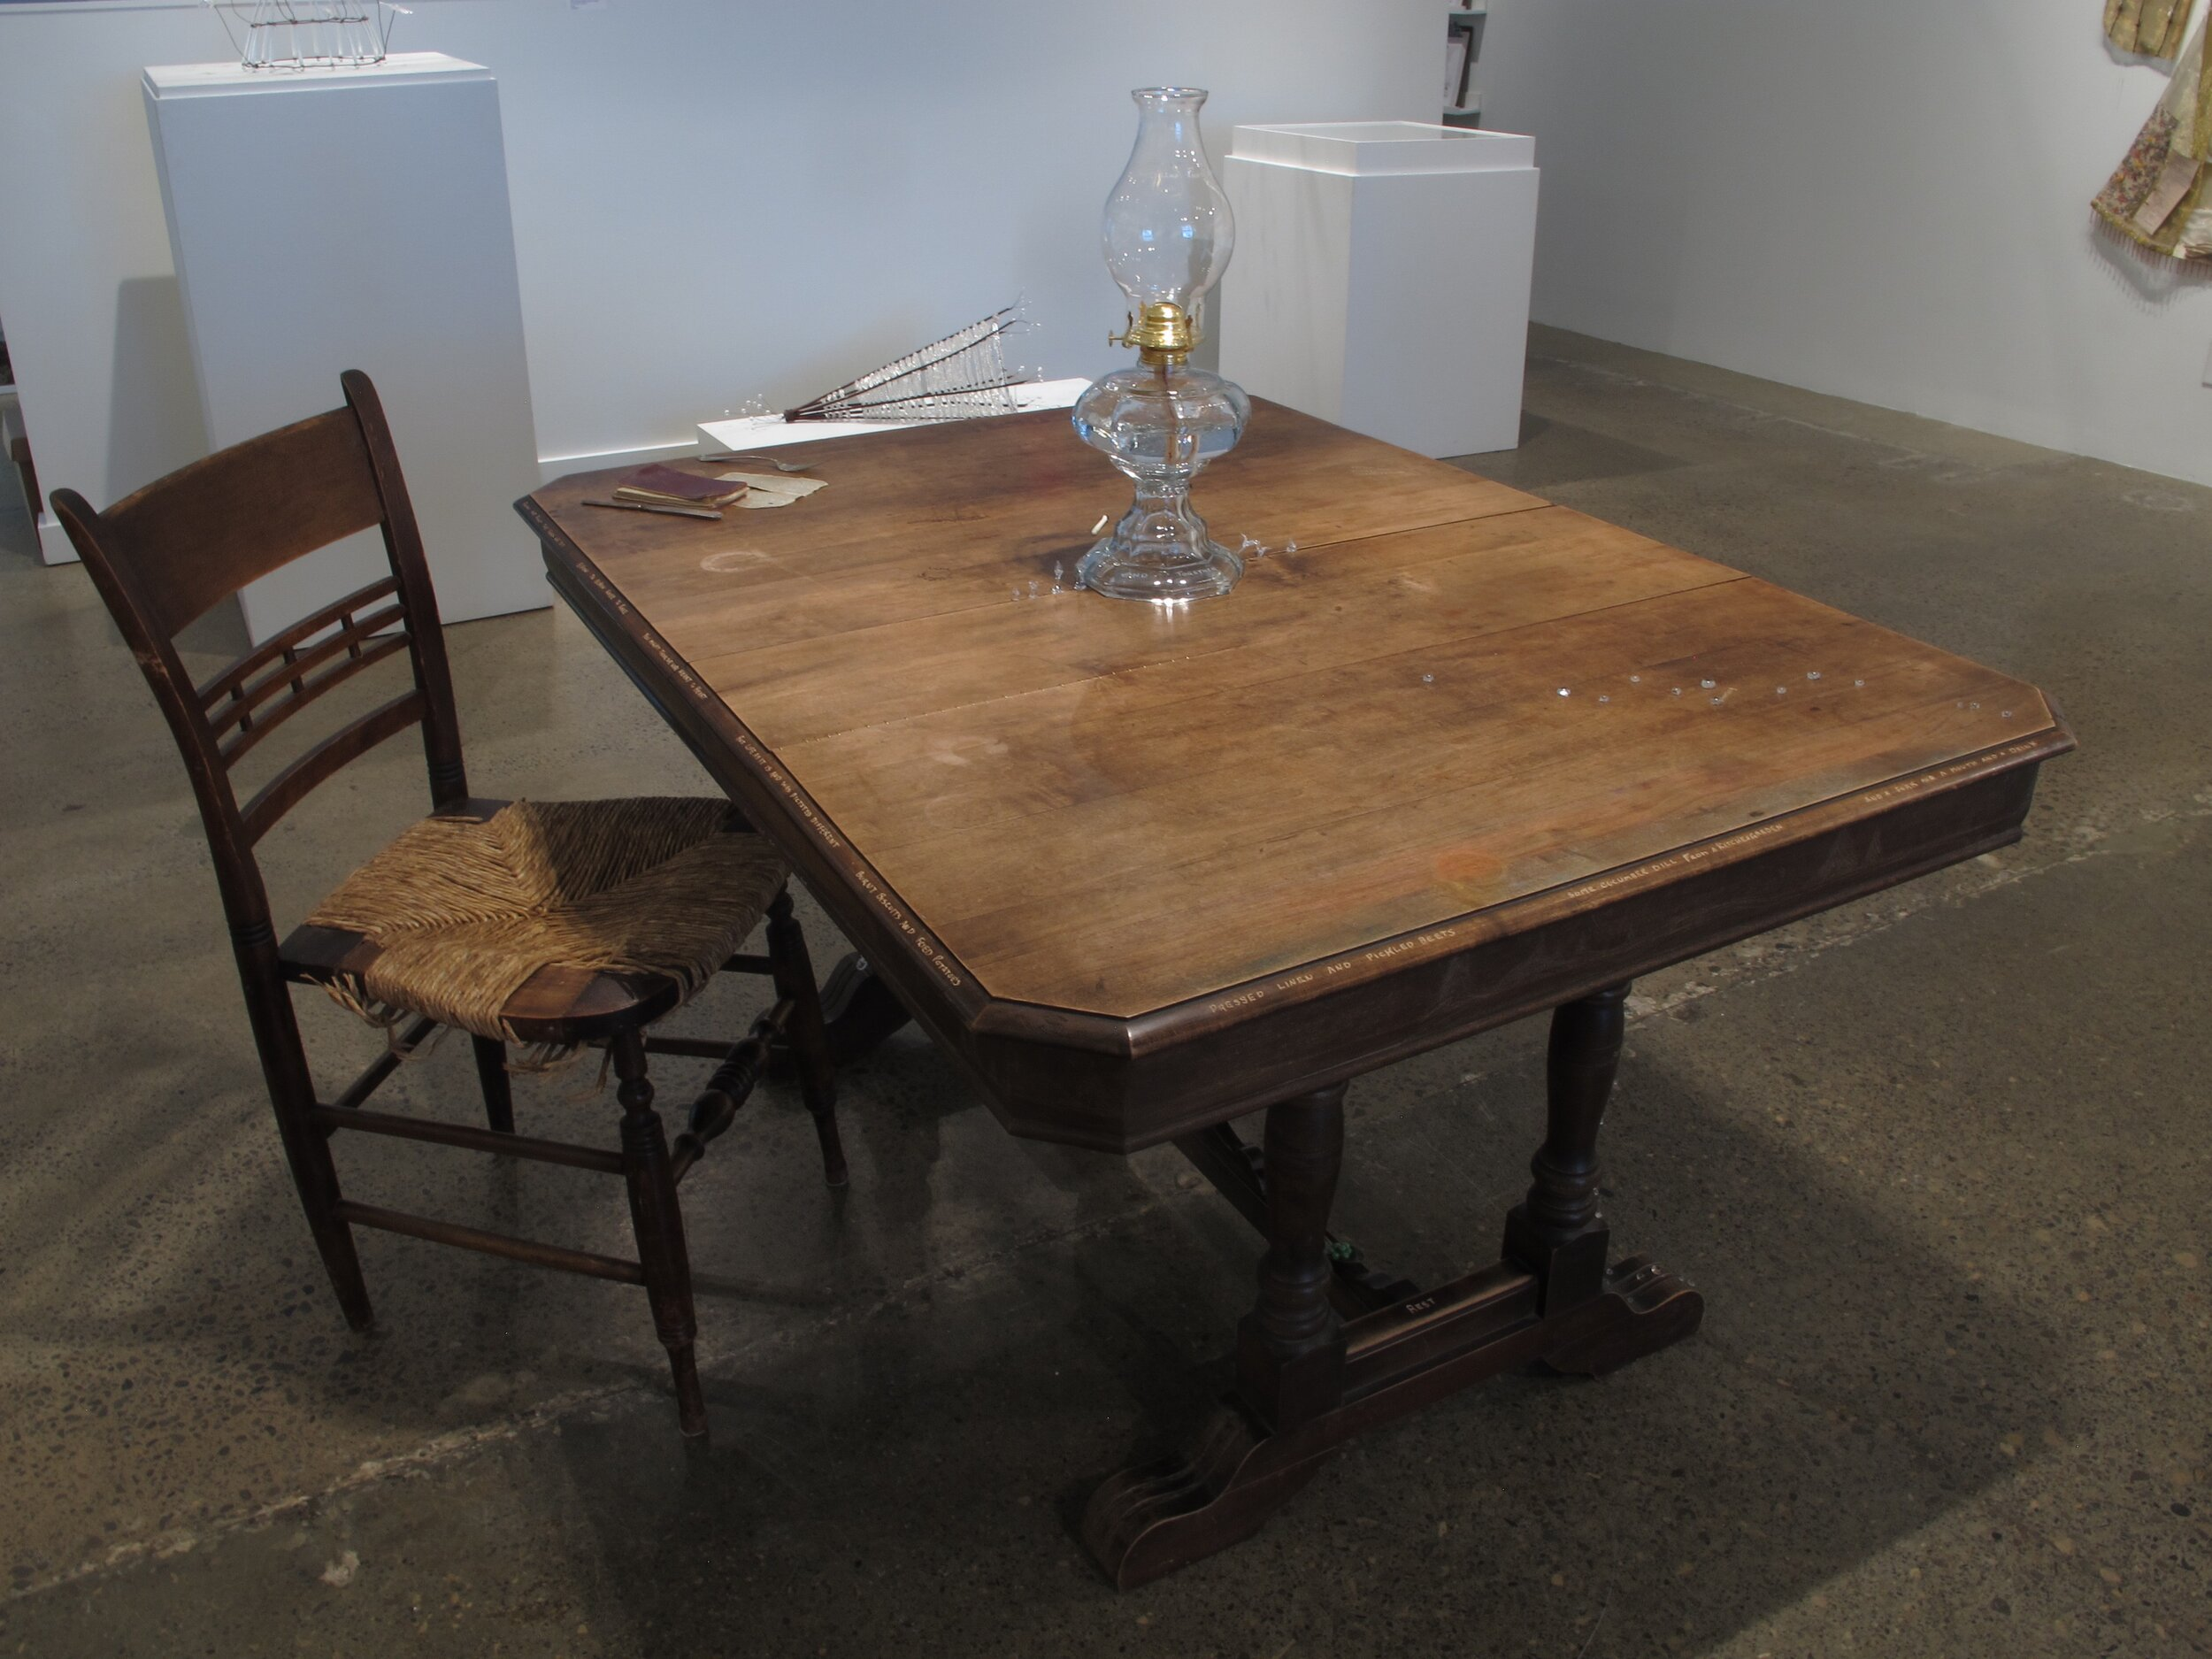 """""""Table of Tales"""" Table, natural & found objects 122 h x 102 w x 137 l cm 2019 Made in collaboration with Andy Trull, Katherine Blomquist, Jennifer Bennett Pond, Scott Pond, Tao Organ, Anya Gansterer, Sigrid Geddes, Gwen Stewart, Anna MacDonald, Megan Spencer, Steven Martyn and Emmara Lyons Grodet.  For this piece I hosted three gatherings around the table. The first and the last were full multi-course meals that I made and served. During this time we shared stories, discussed the table and reflected on the memories and feelings it held or evoked.  Table donated by Robbie Sea Van Vlaenderen"""